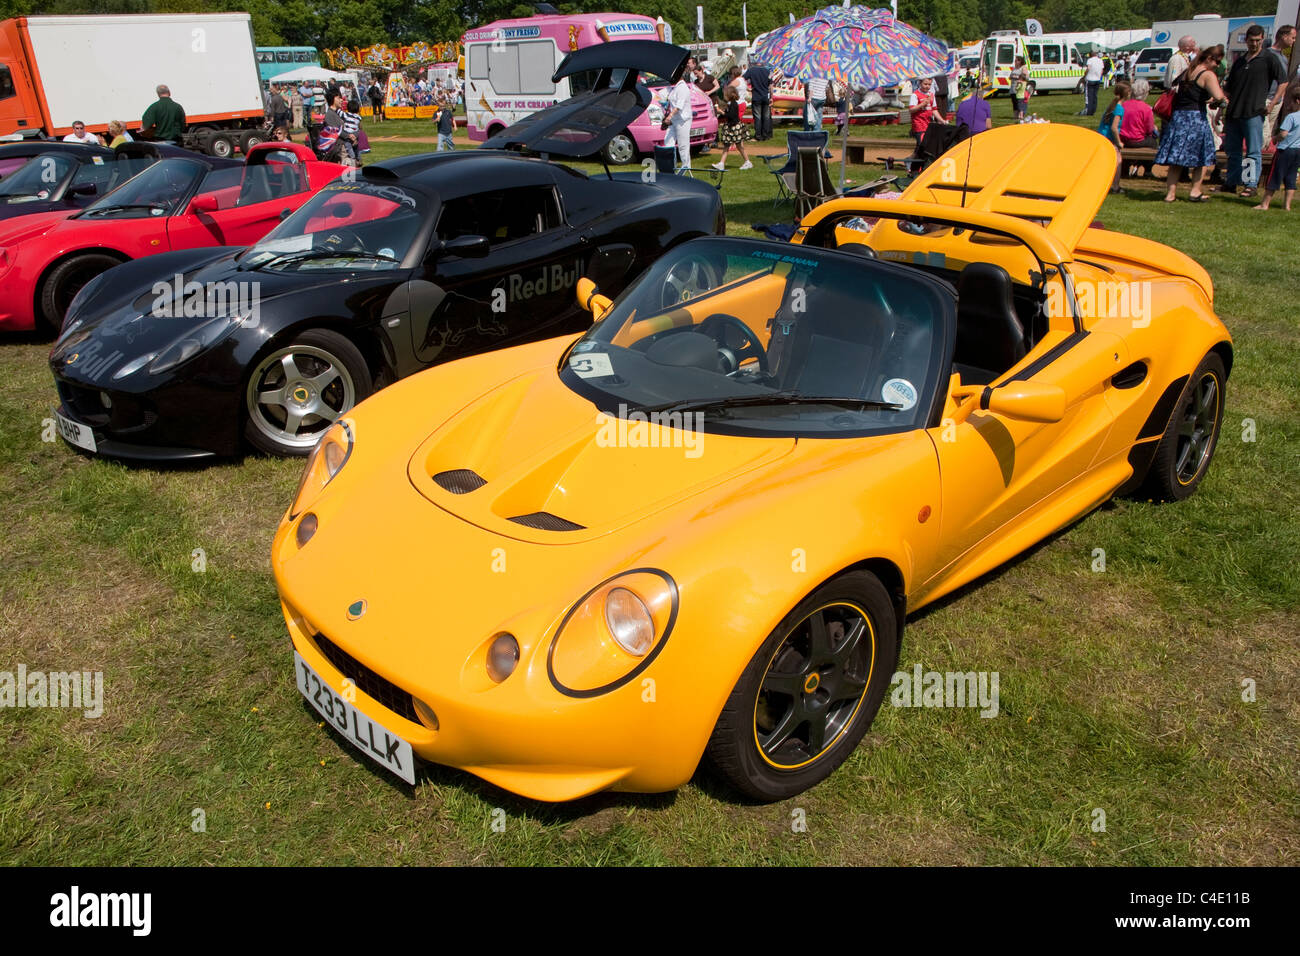 Row Of Lotus Elise Cars On Display At Surrey Heath Show, Frimley Park Lodge,